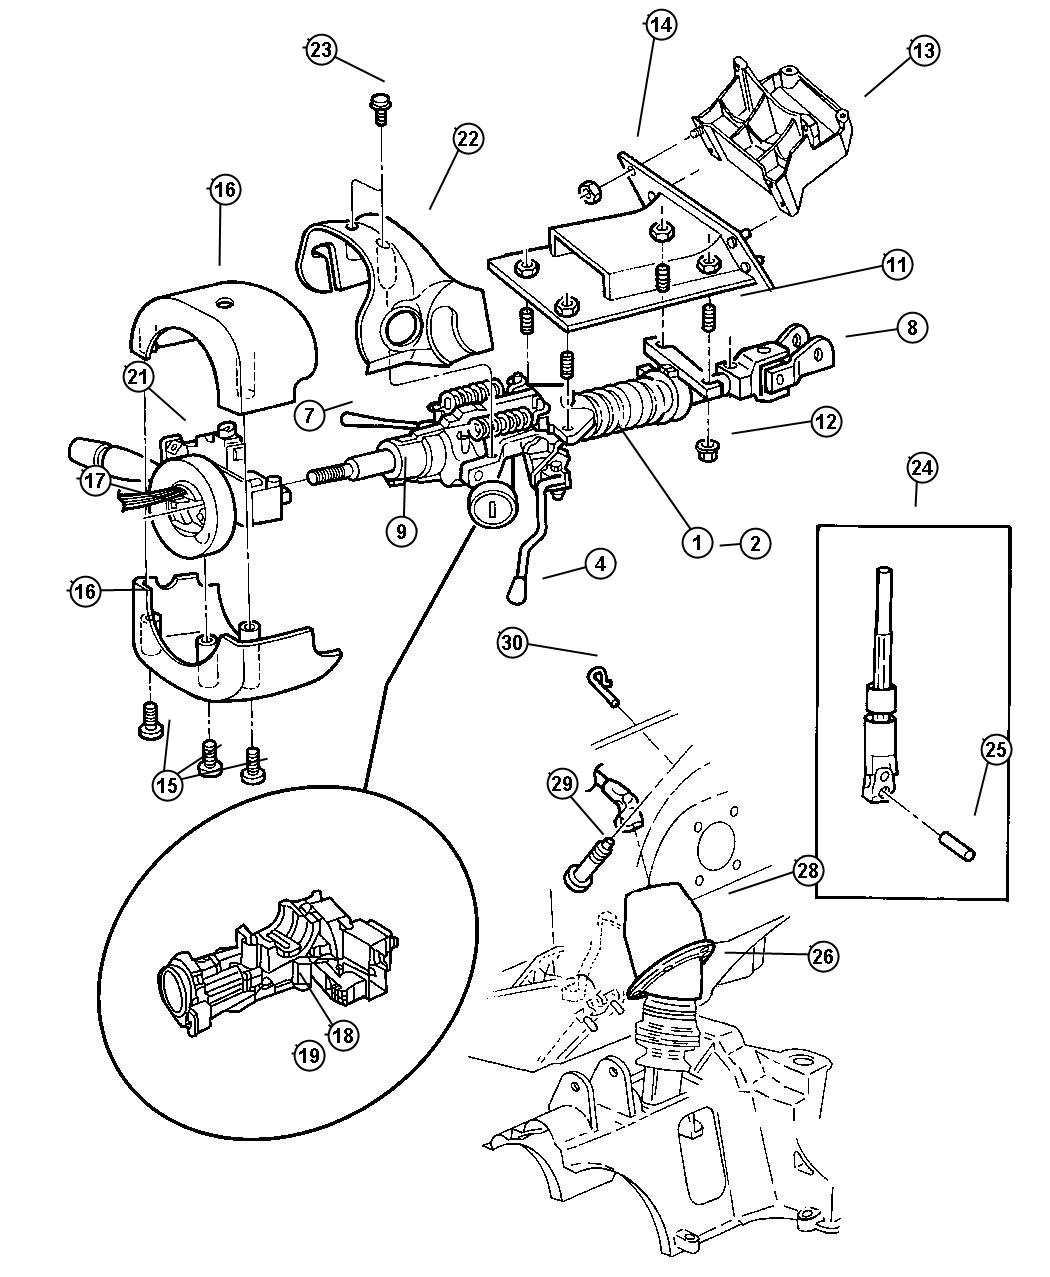 Service manual [Loose Tilt Steering Wheel On A 2002